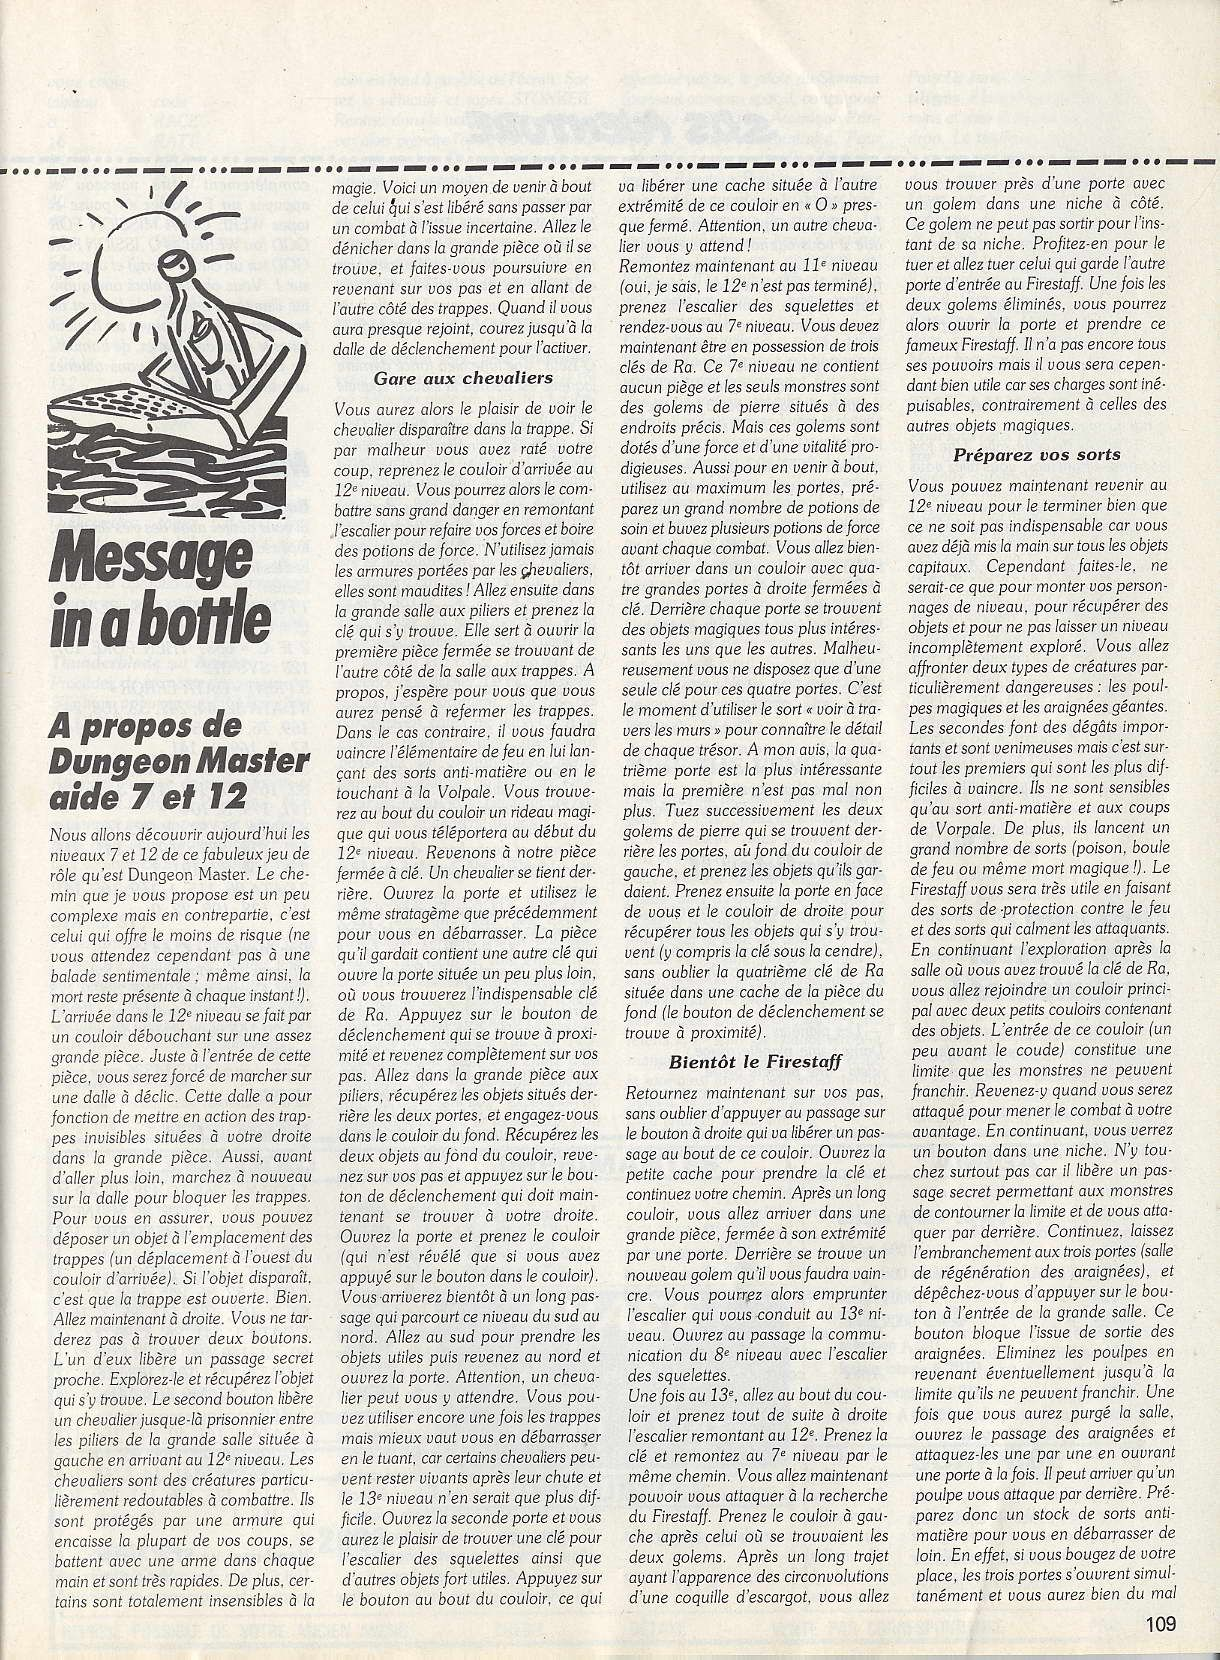 Dungeon Master Hints published in French magazine 'Tilt', Issue #66, May 1989, Page 109